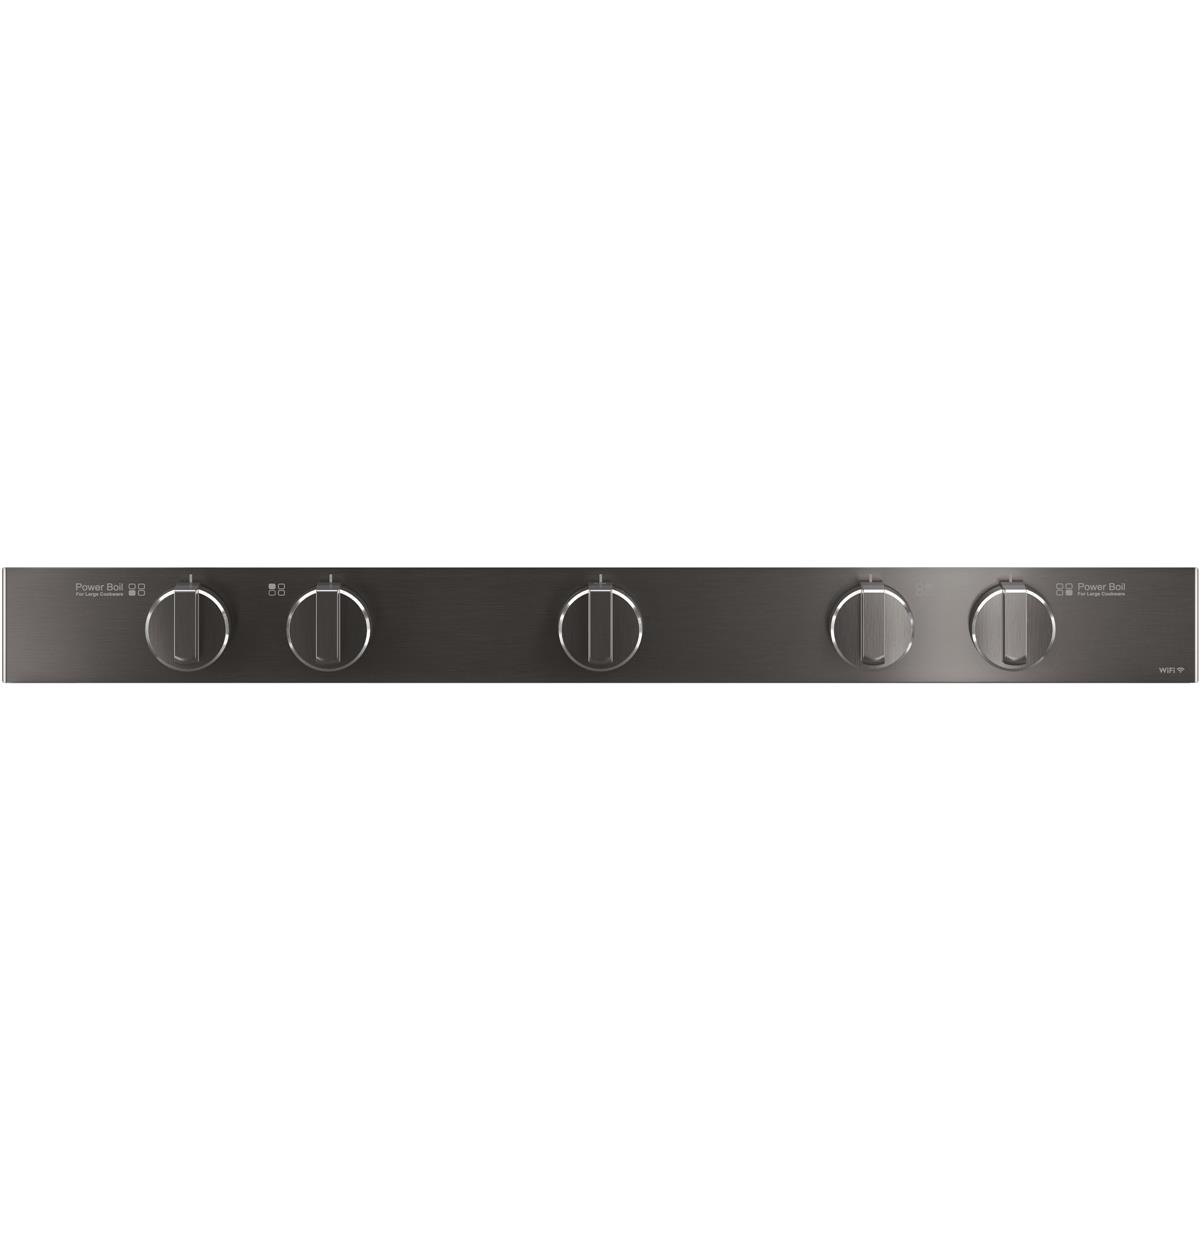 Black Stainless  QGSS740BNTS Control Panel